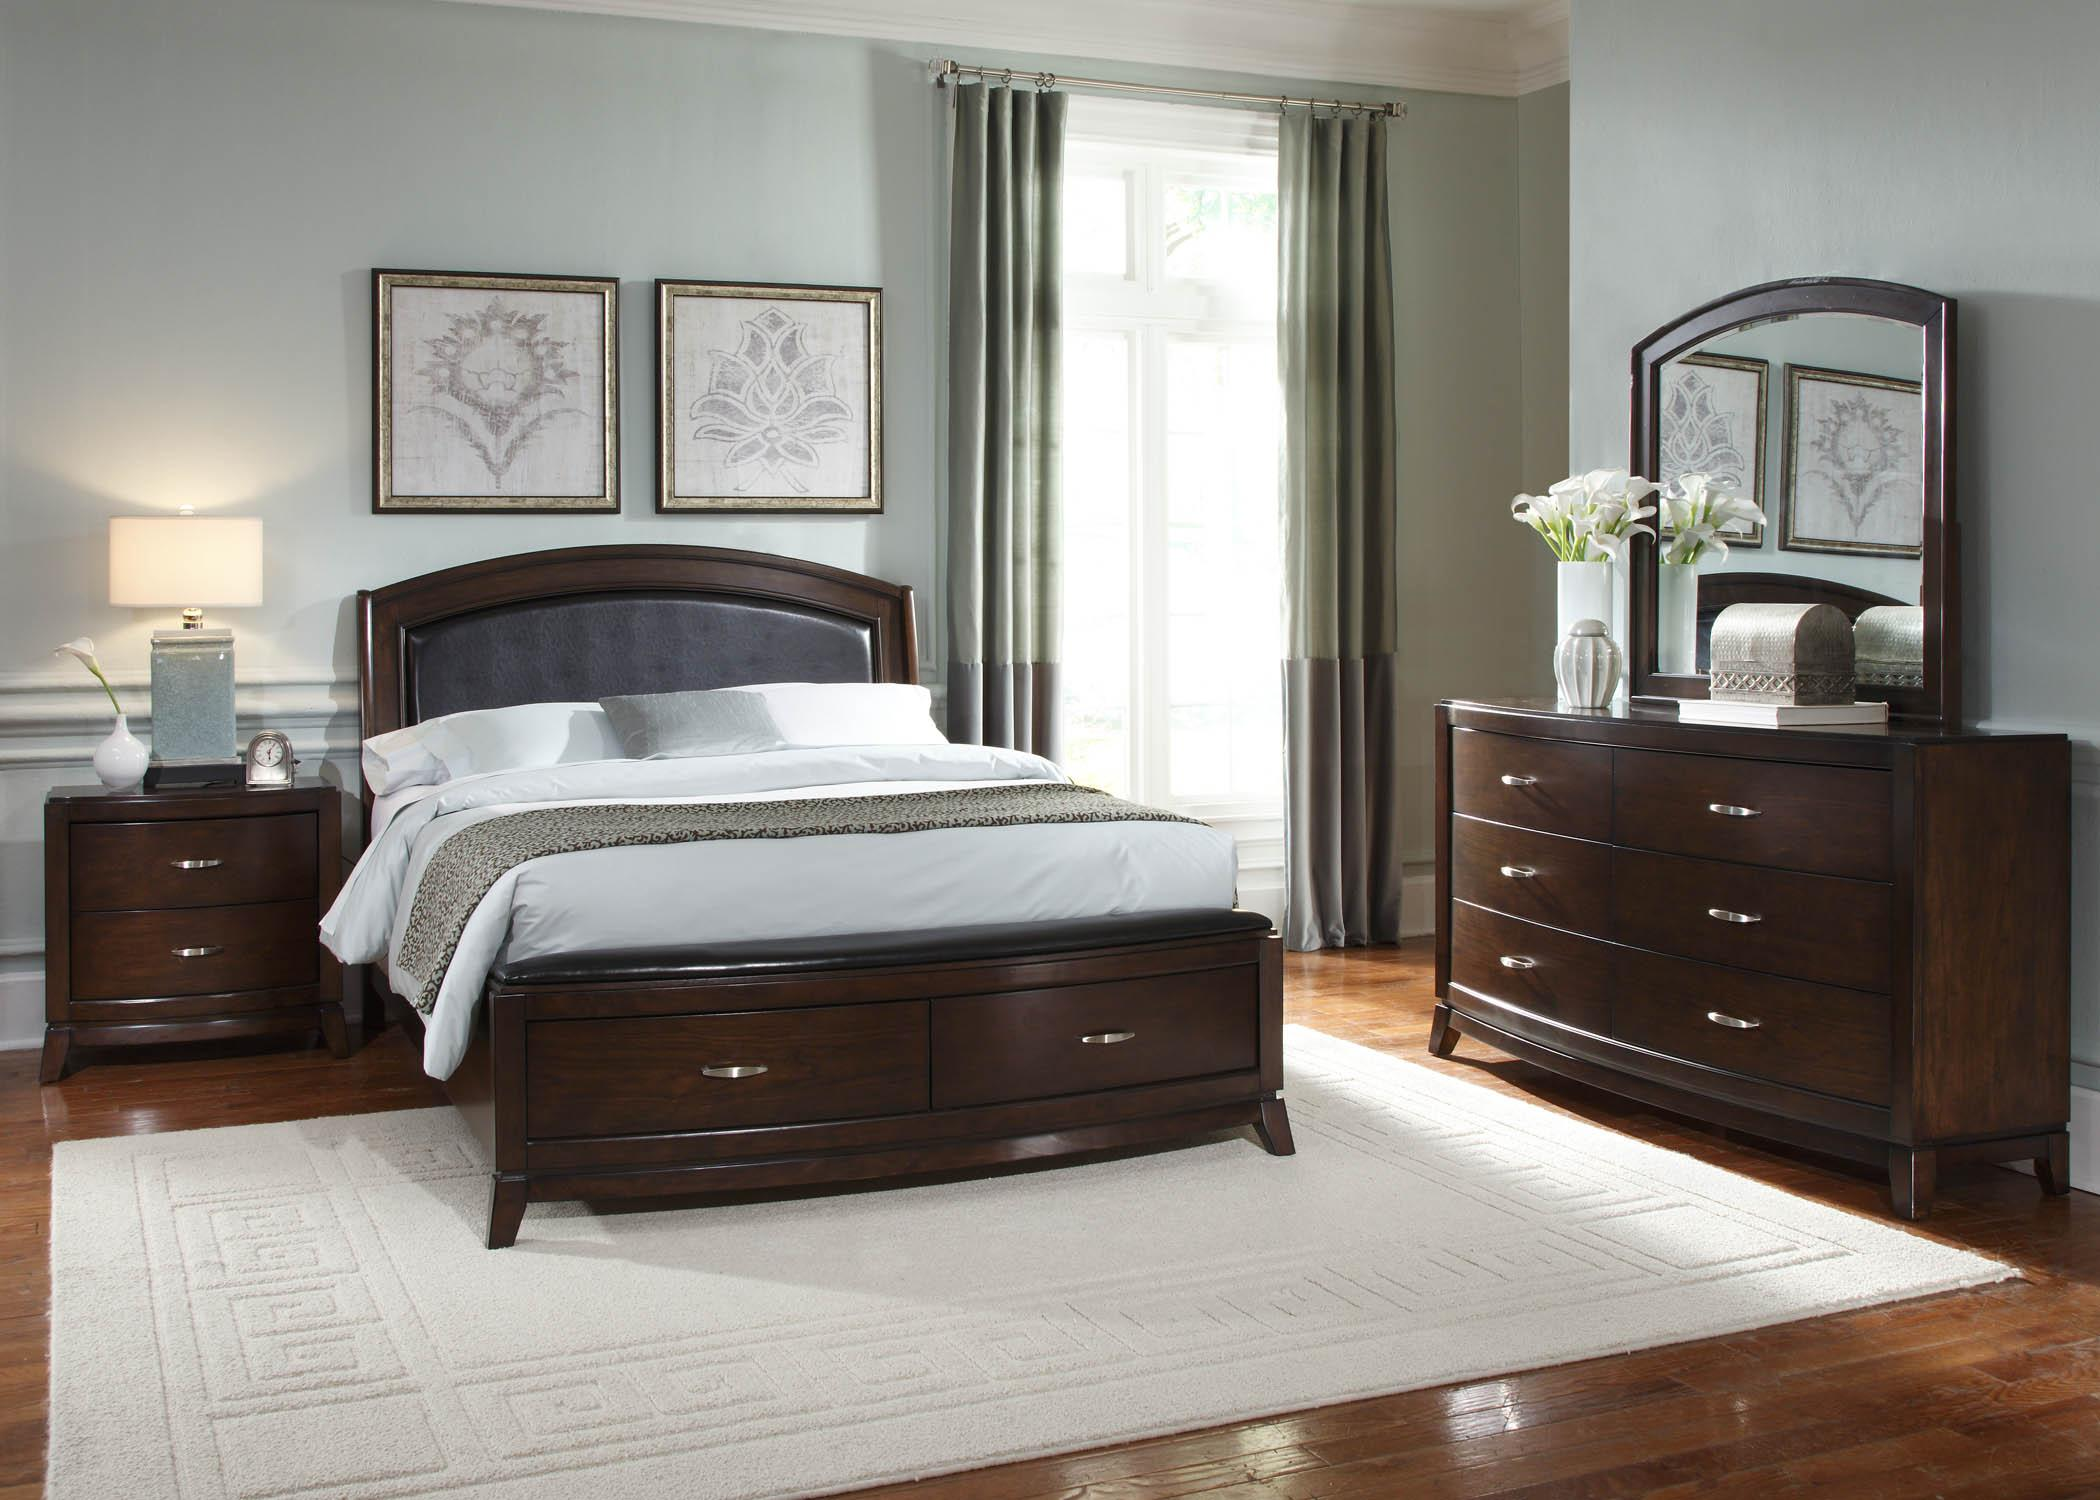 Avalon 4pc Queen Storage Bedroom Set Rotmans Bedroom Groups Worcester Boston Ma